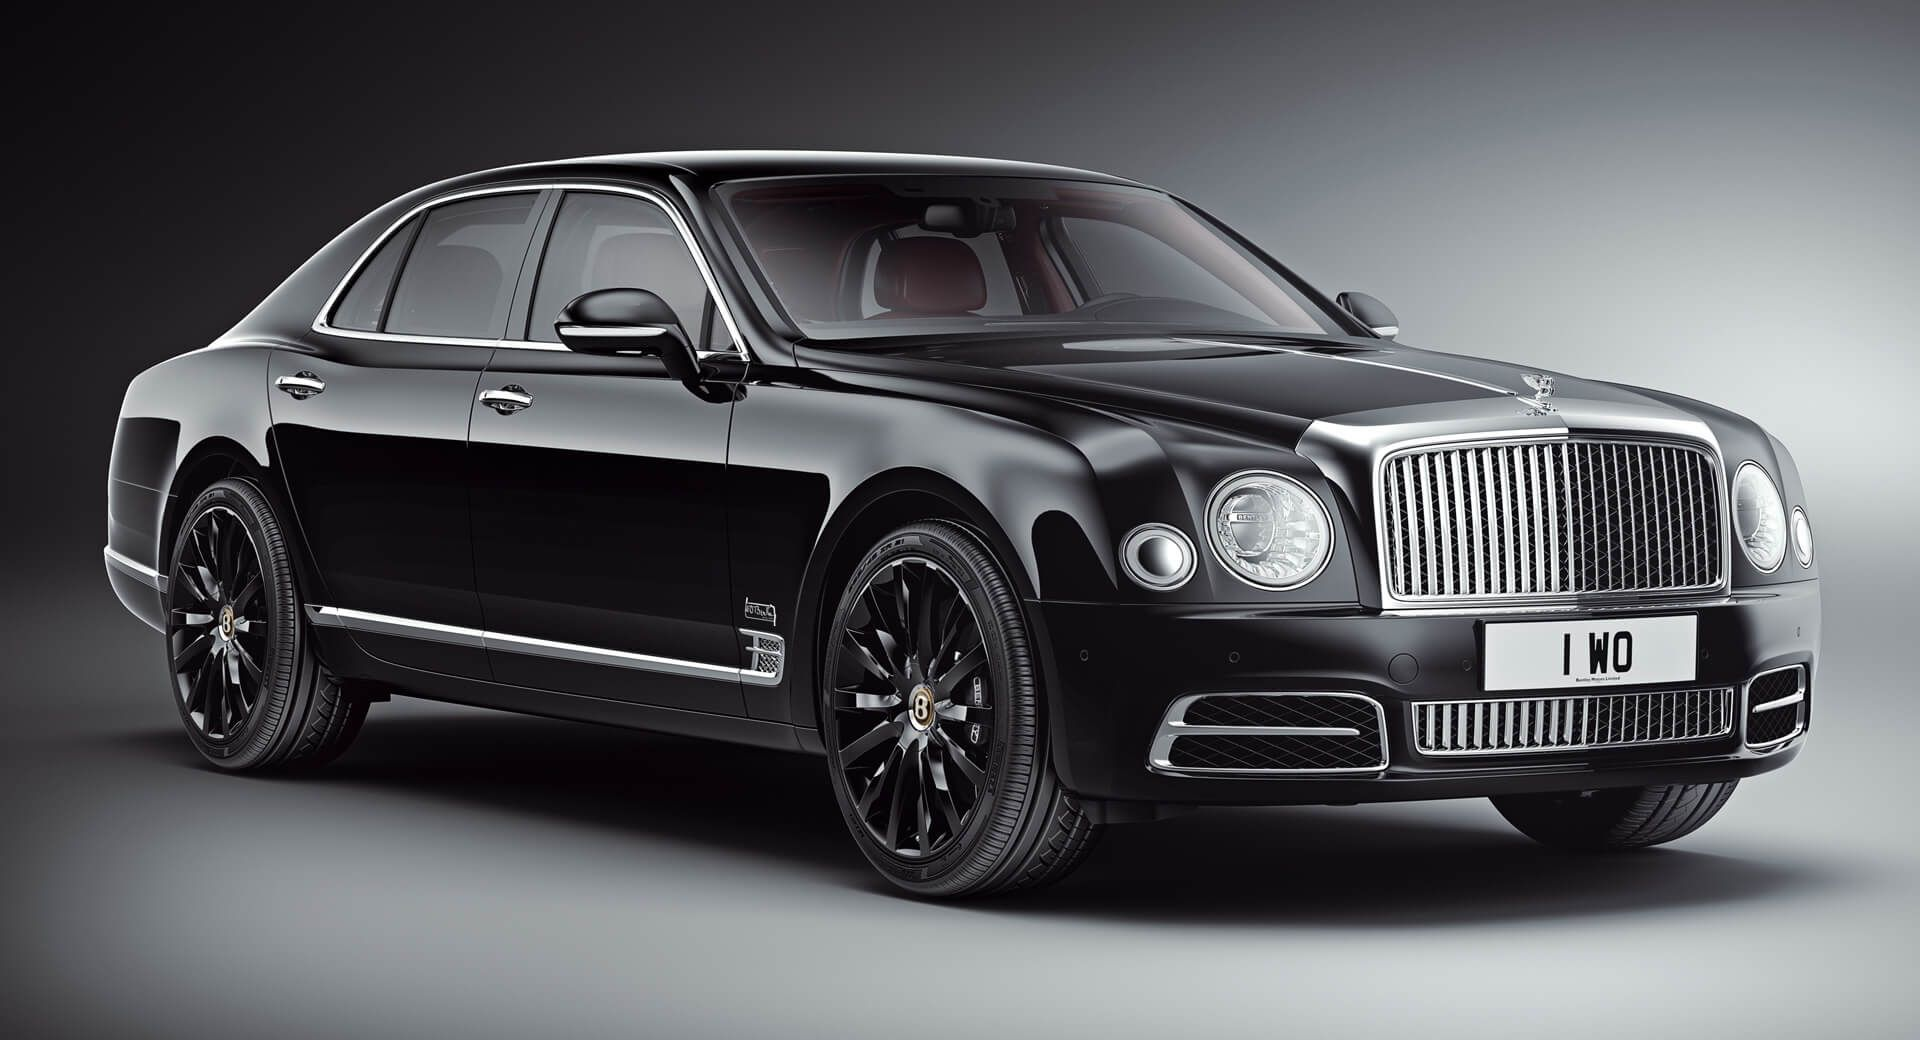 Bentley Mulsanne W O Edition By Mulliner Is Craftsmanship At Its Finest Carscoops Bentley Mulsanne Bentley Car Bentley